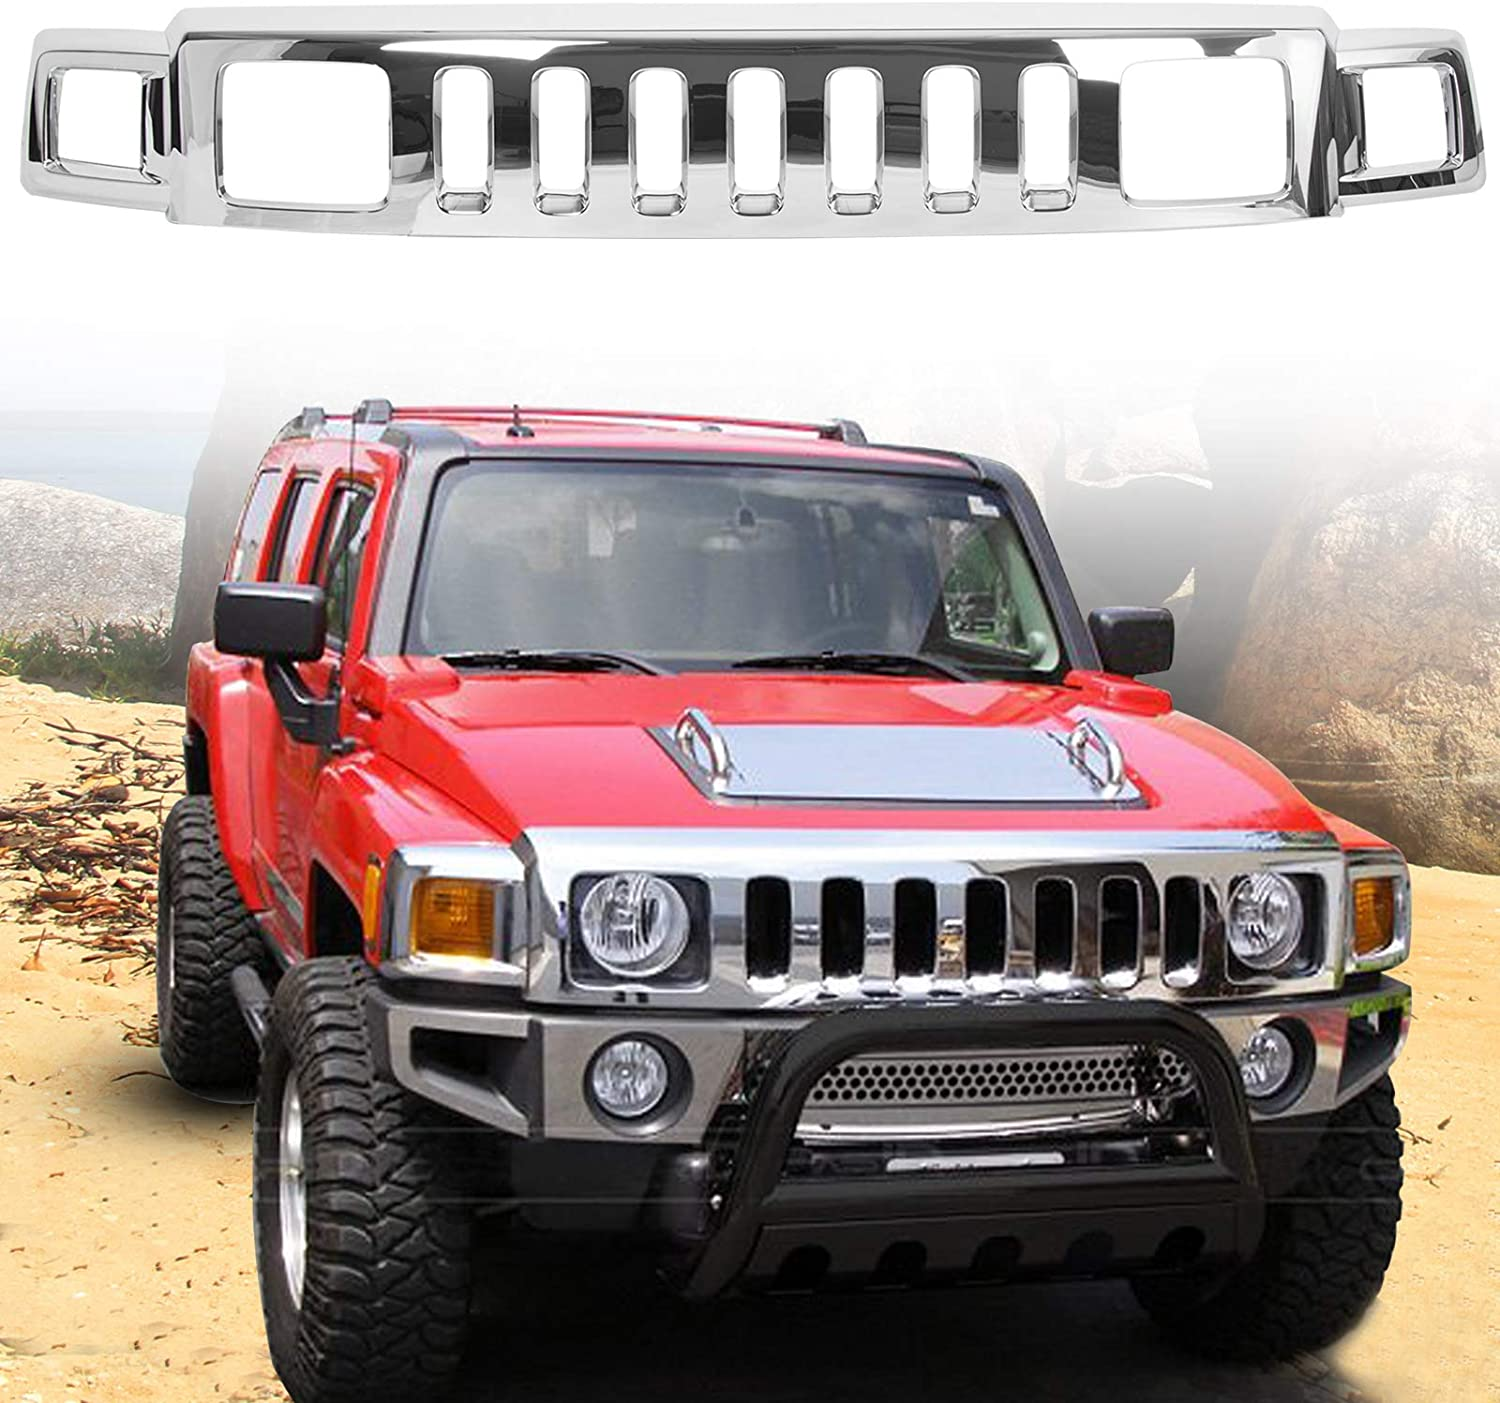 ECOTRIC Front Chrome Grille Face Bar Assembly/ for 2006-2010 Hummer H3 Replacement for Hu1200101